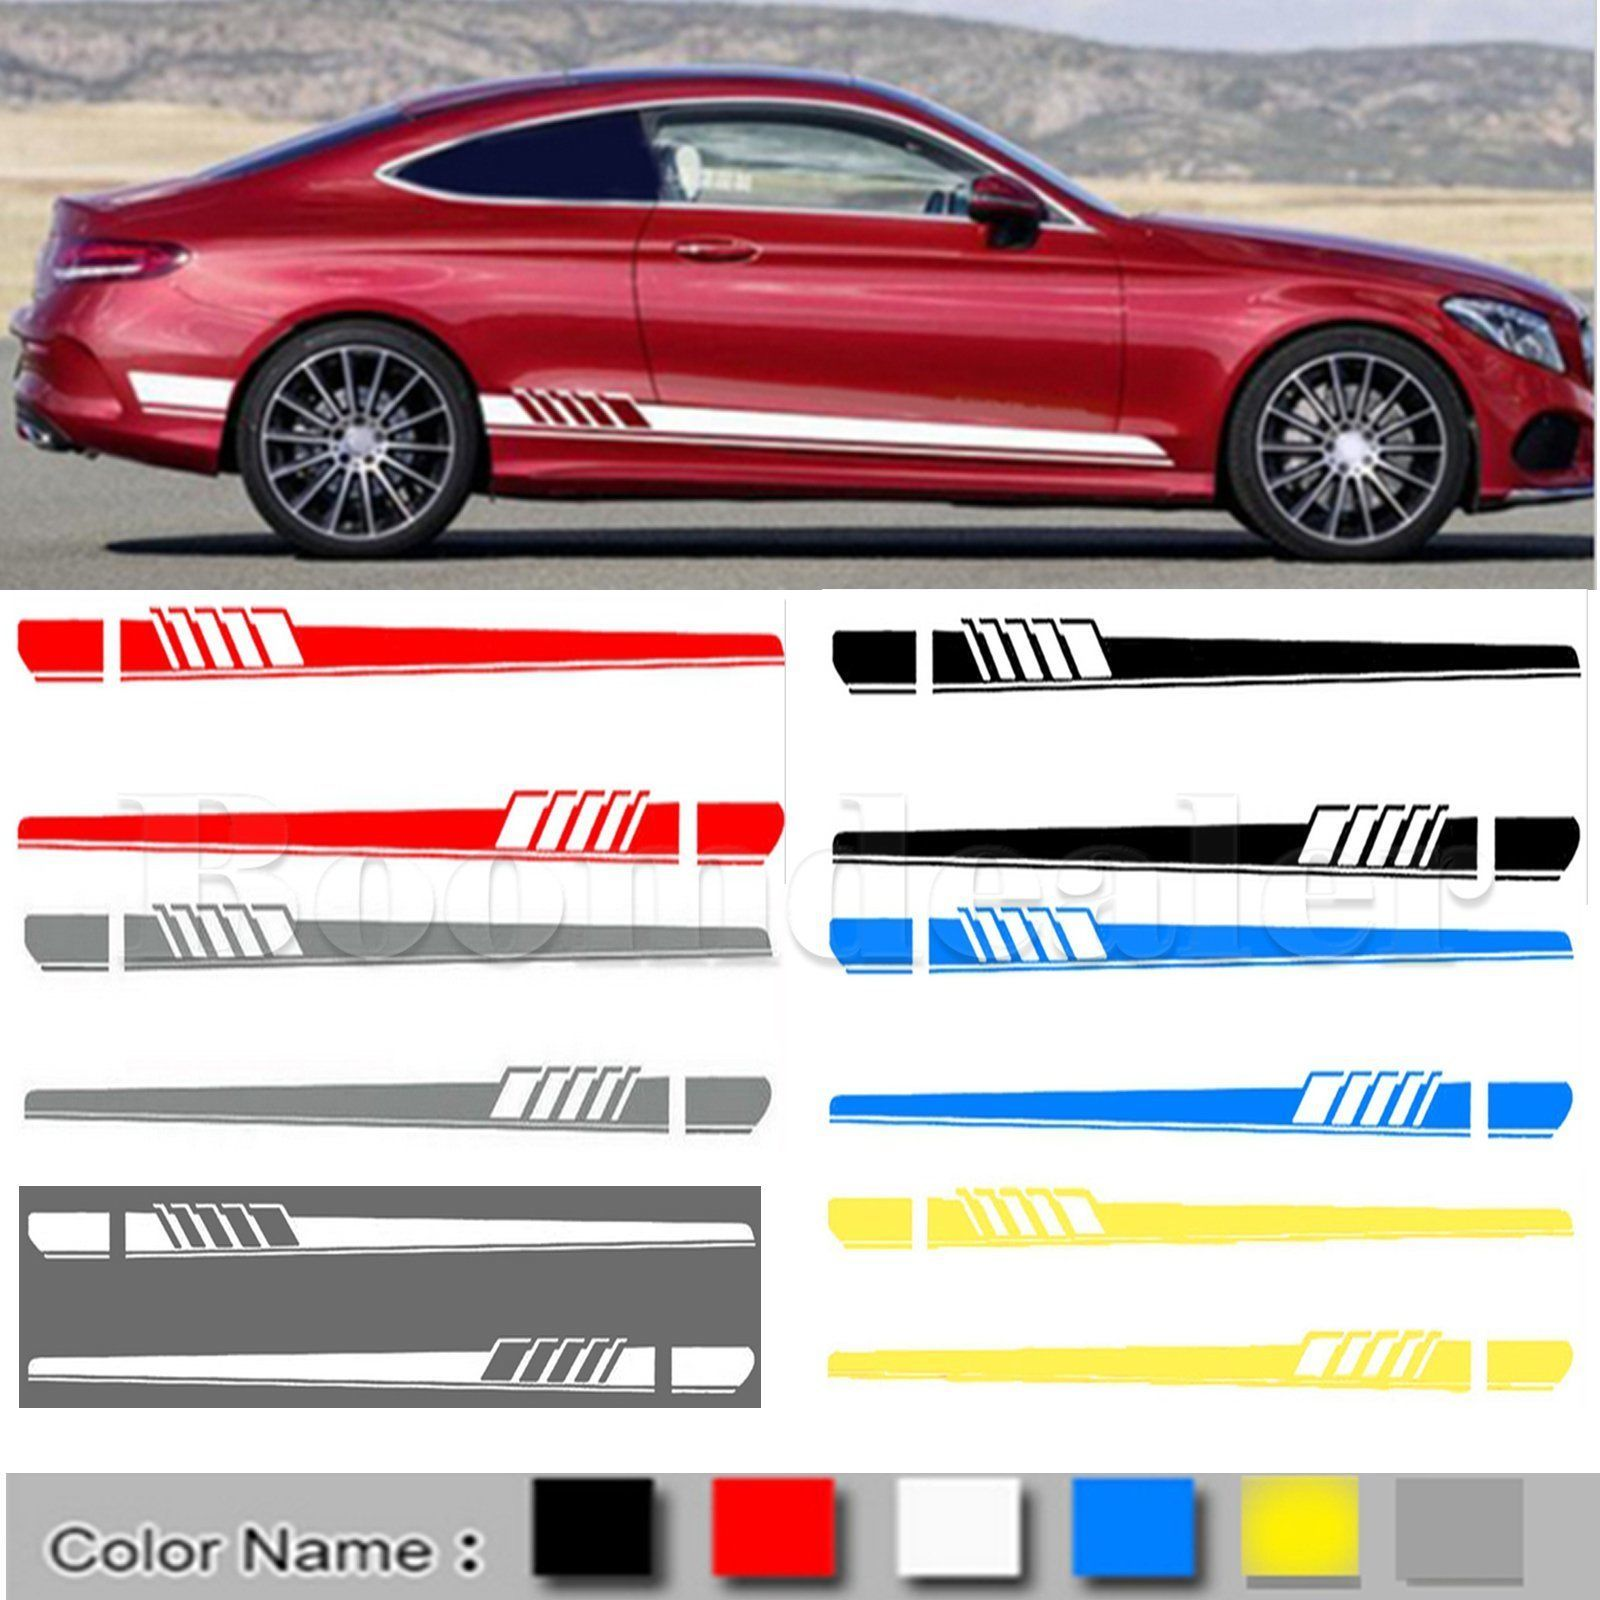 2pcs Racing Car Body Stripe Stickers Side Decals Skirt Vinyl For Mercedes Benz C Stiker Modifikasi Mobil Mobil